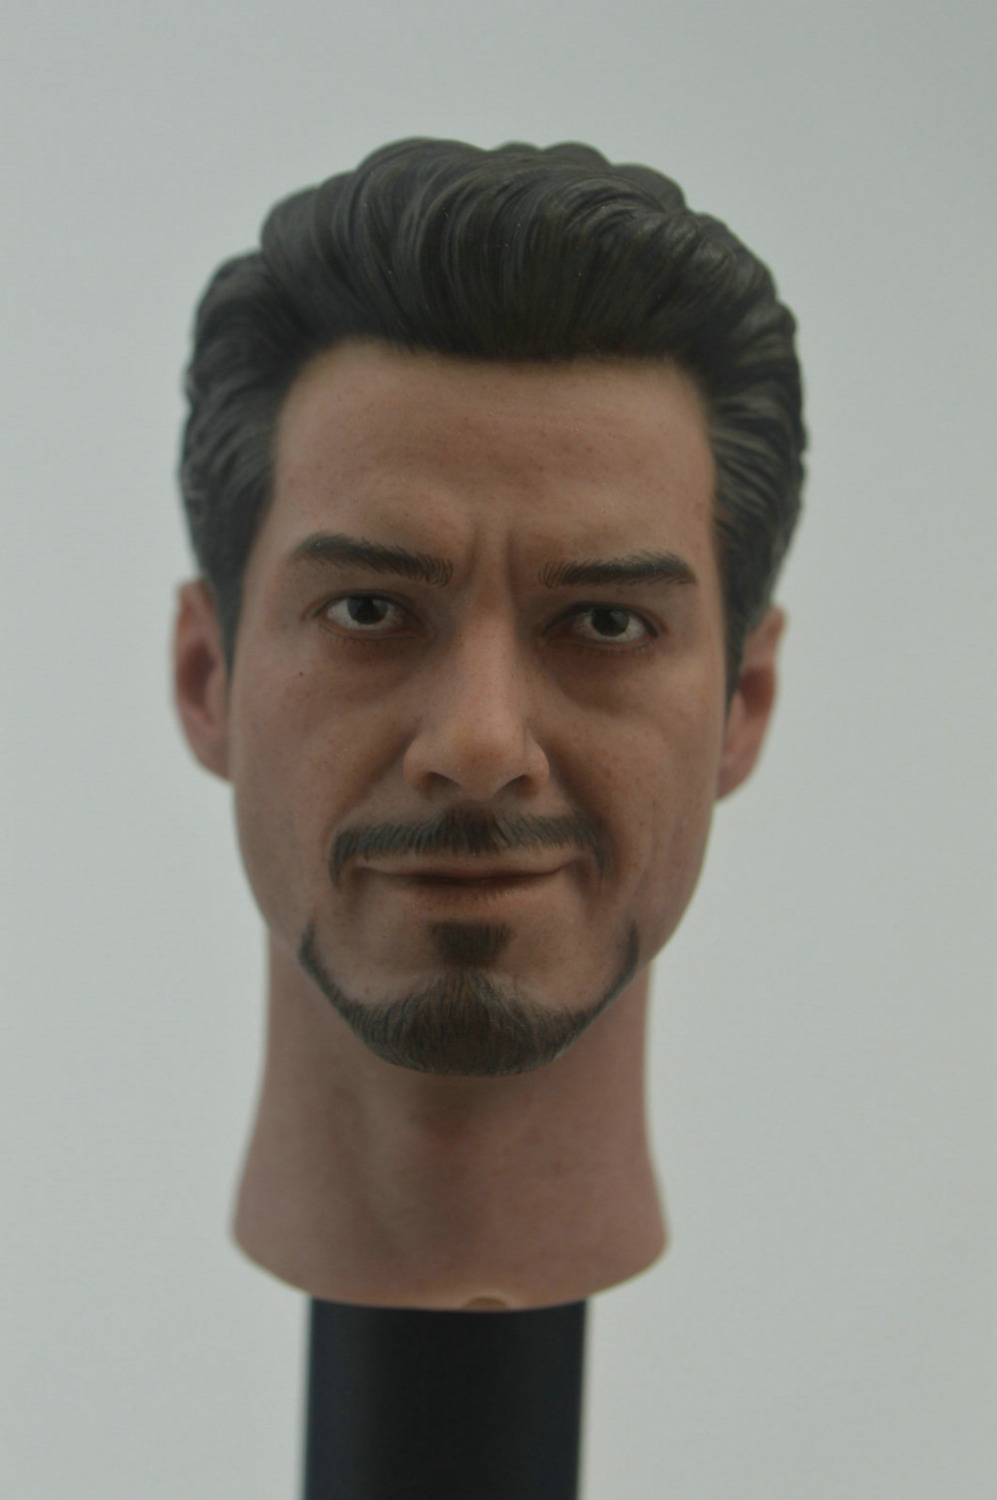 Custom 1/6 Scale Tony Stark Robert Downey Jr. Head Sculpt For Hot Toys Body for 12